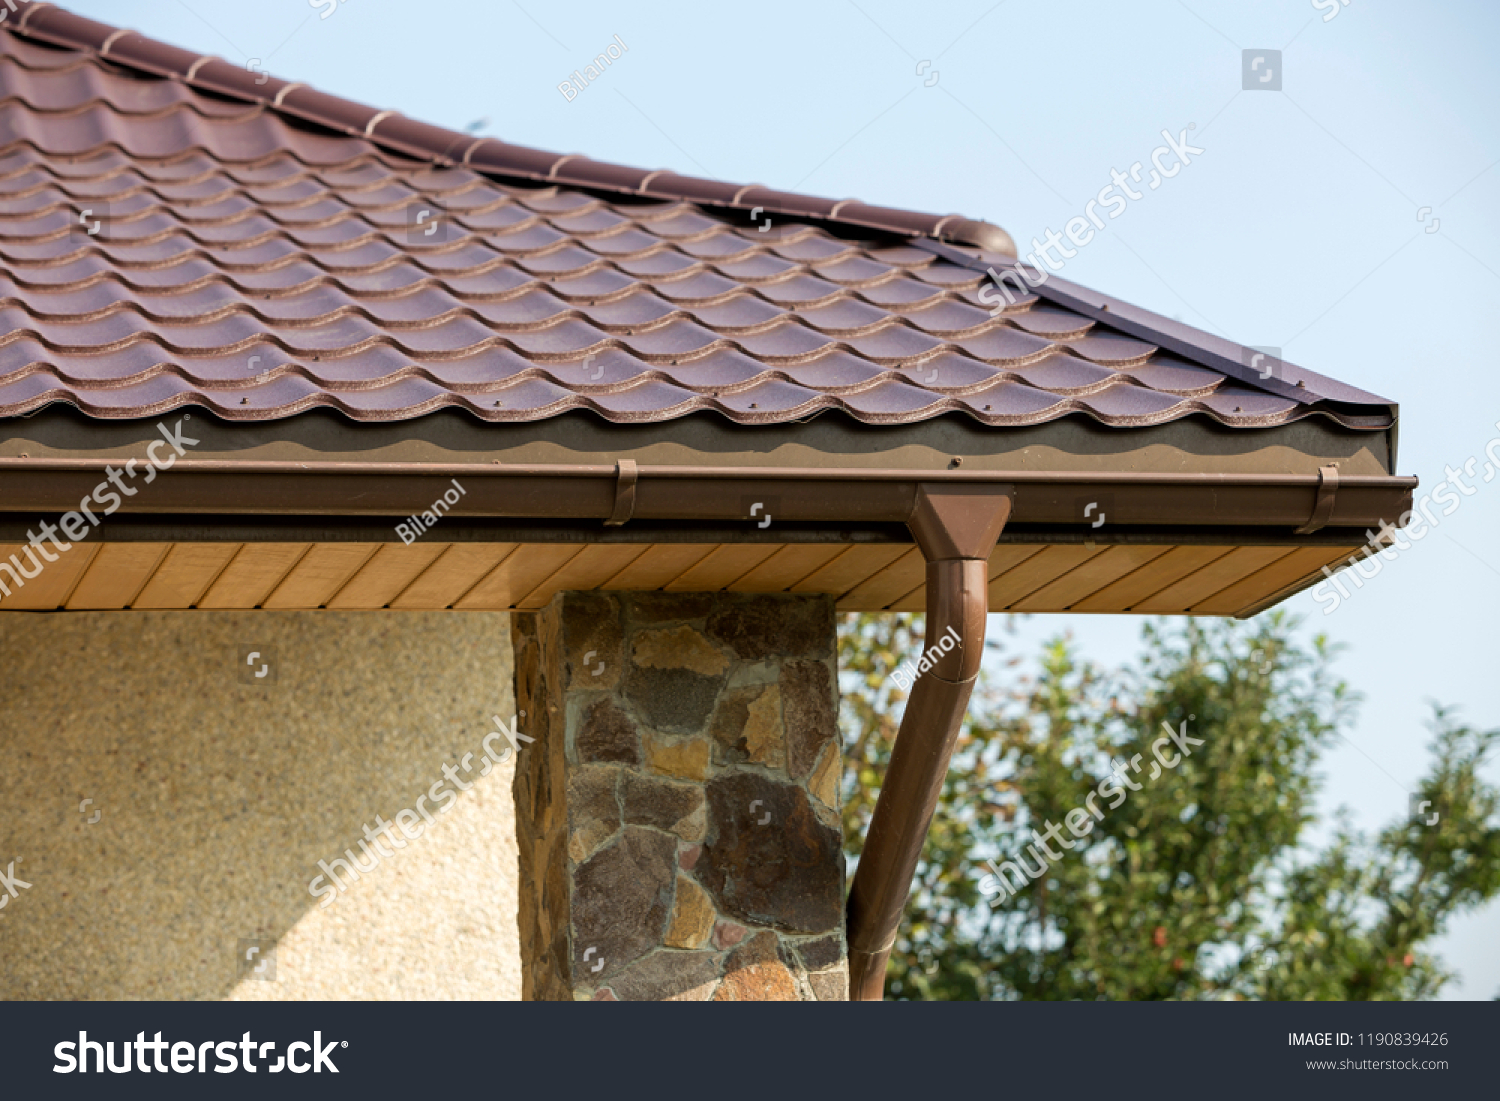 Detail of new modern house cottage corner with stucco walls decorated with natural stones brown